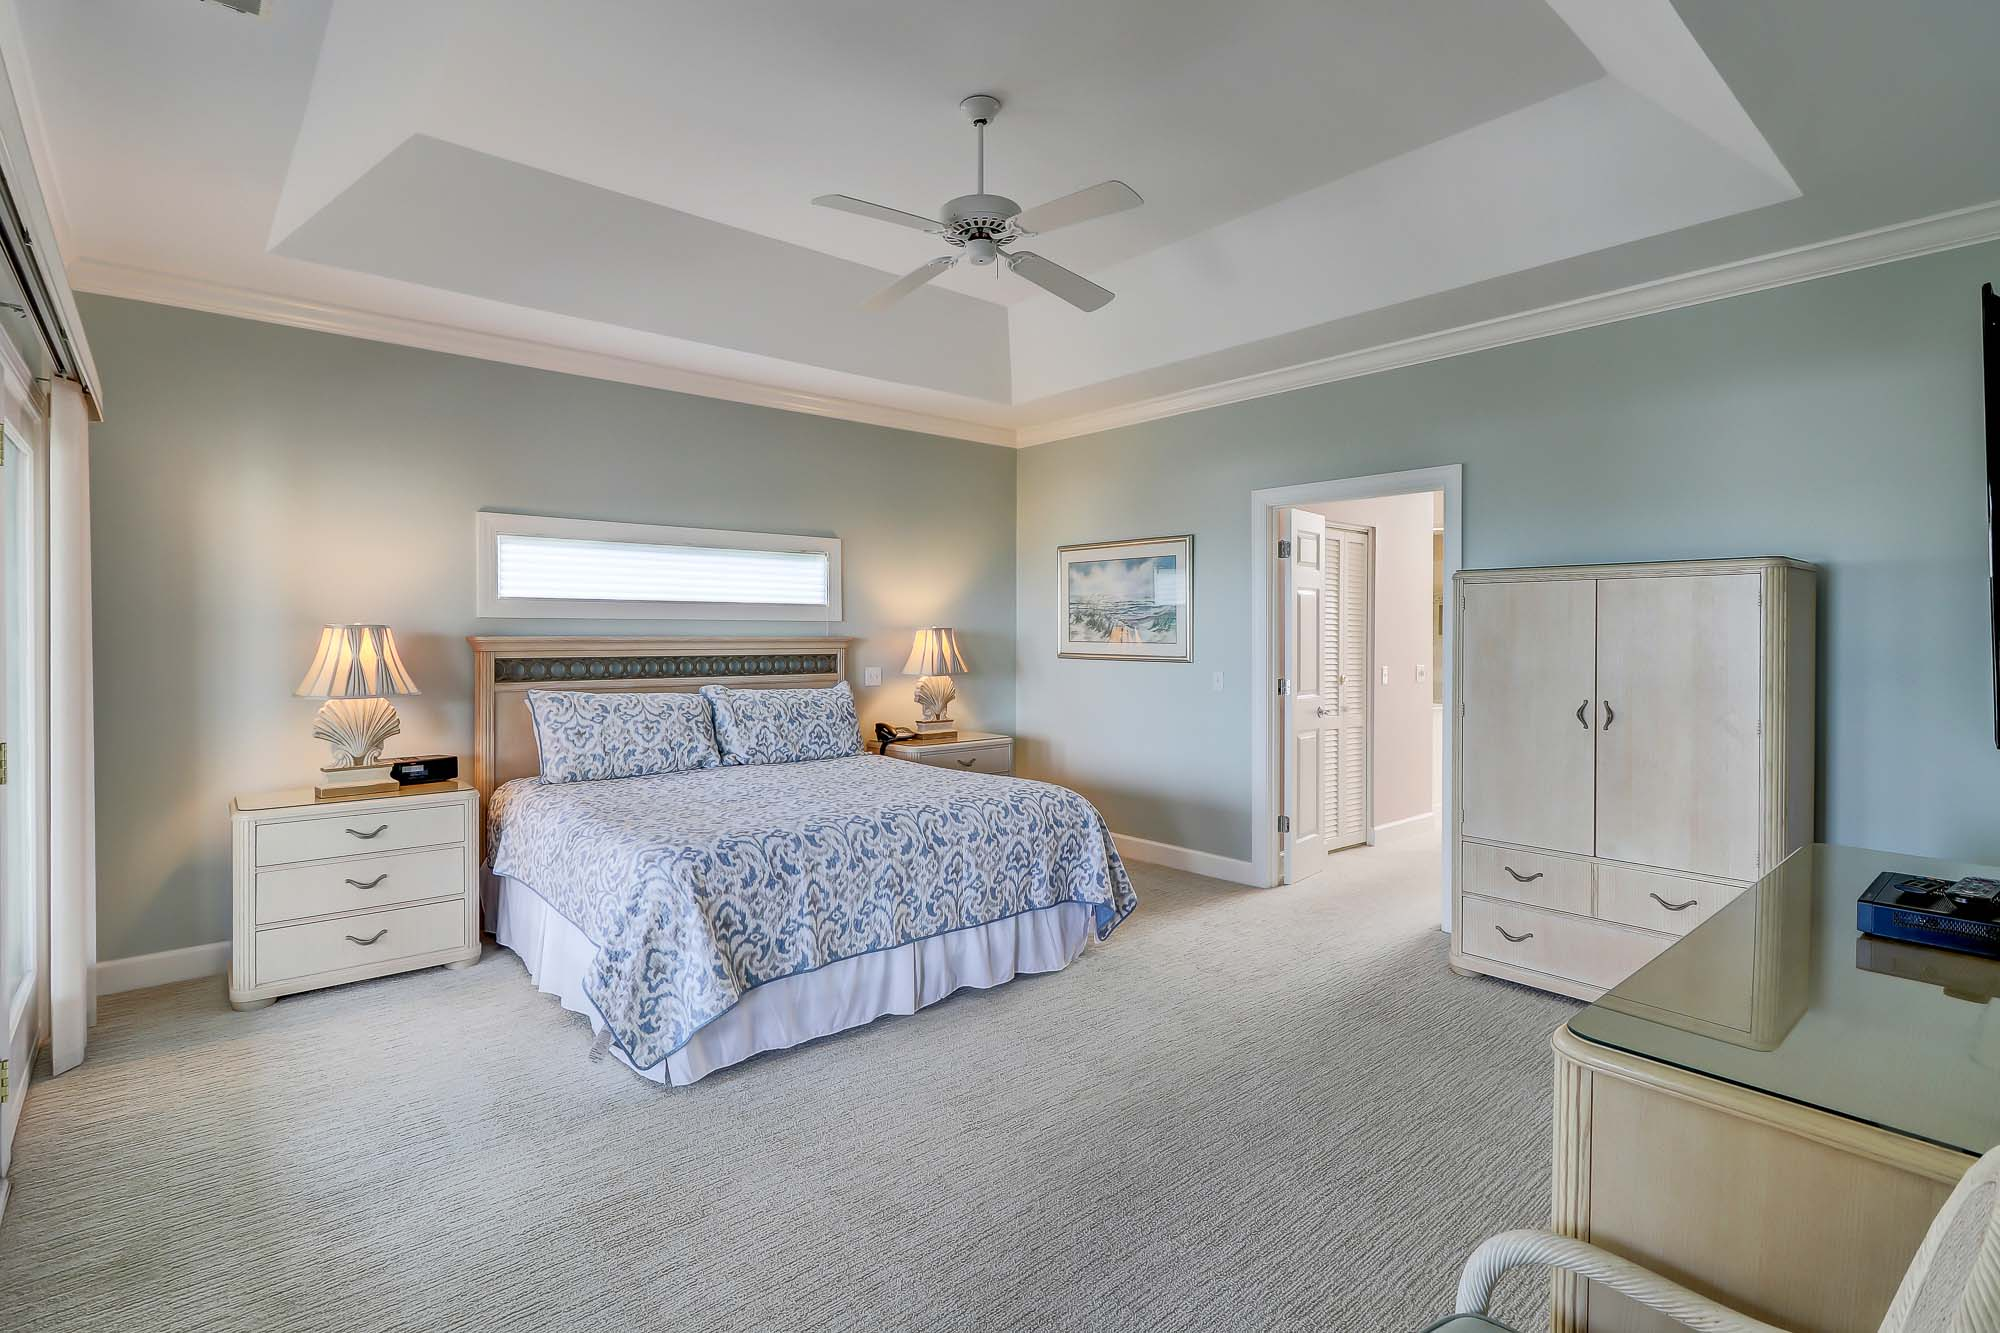 Upstairs master bedroom is large and features king bed, large wall-mounted flat panel TV, access to ocean view covered balcony and has a private en suite bath with 2 vanities, soaking tub and glass-enclosed walk-in shower with accupressure stone floors